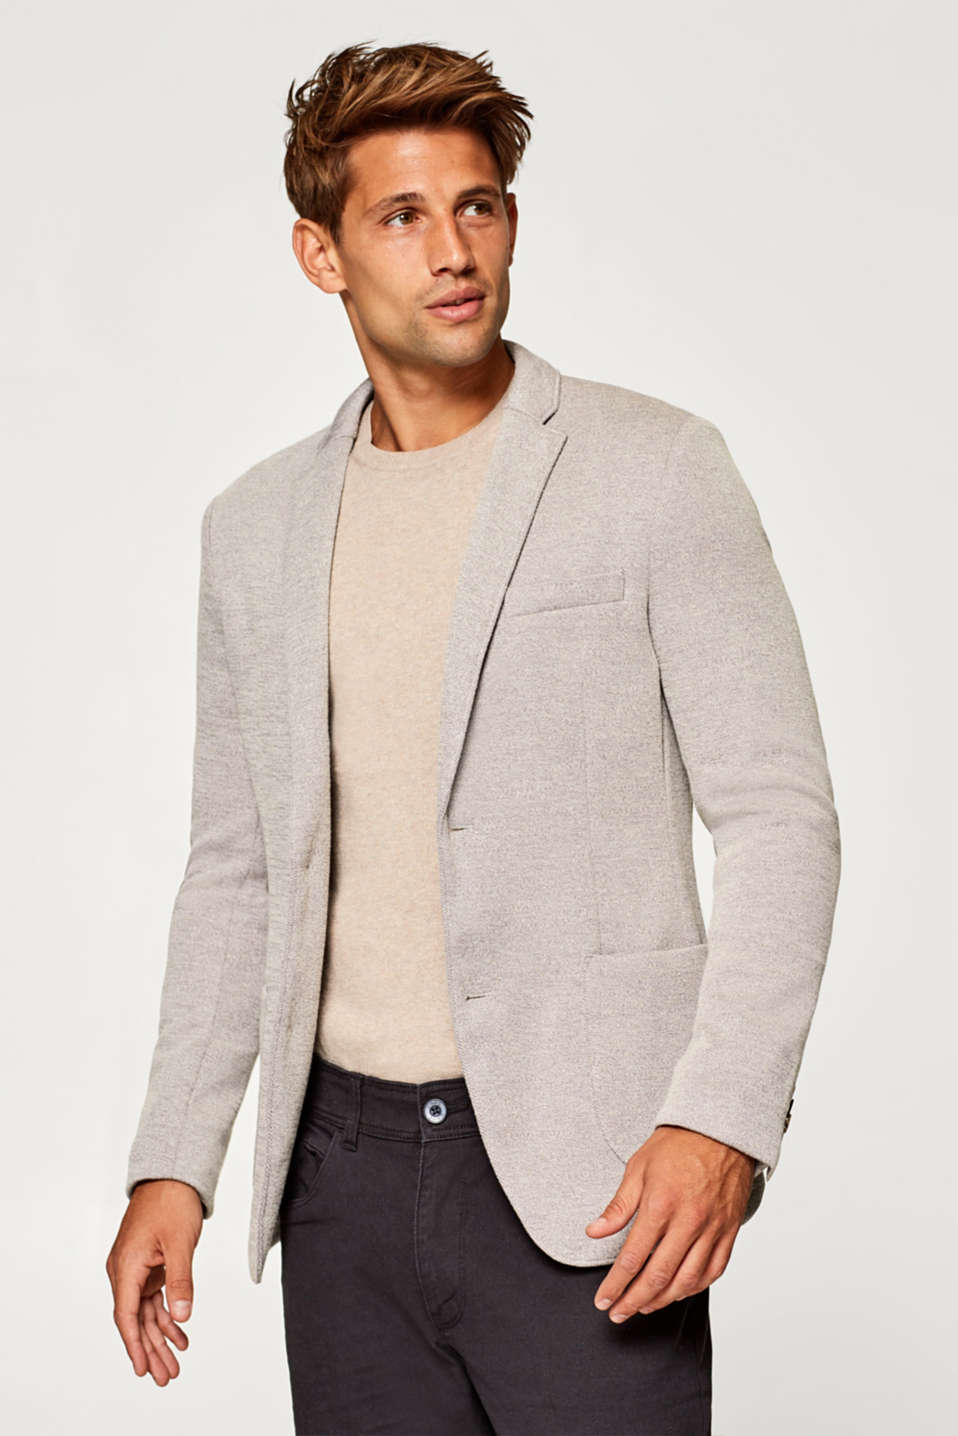 Esprit - Men's blazer in textured jersey